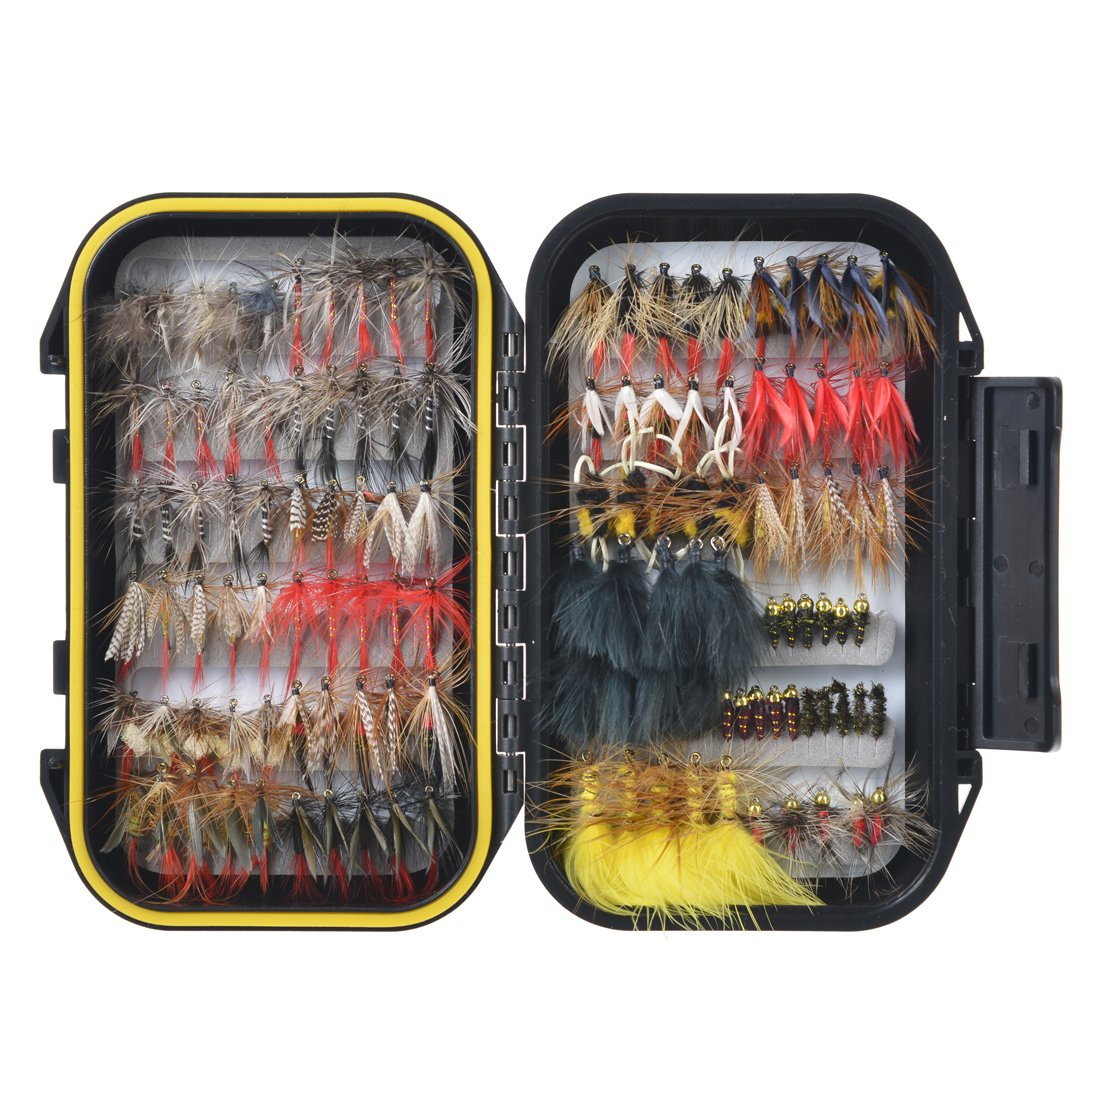 18/36/60pcs Hand-Tied Fly Fishing Lures Waterproof Fly Box Nymphs Mustad Hooks Dry Flies RUNCL Fly Fishing Flies Assortment Streamers Wet Flies Emergers